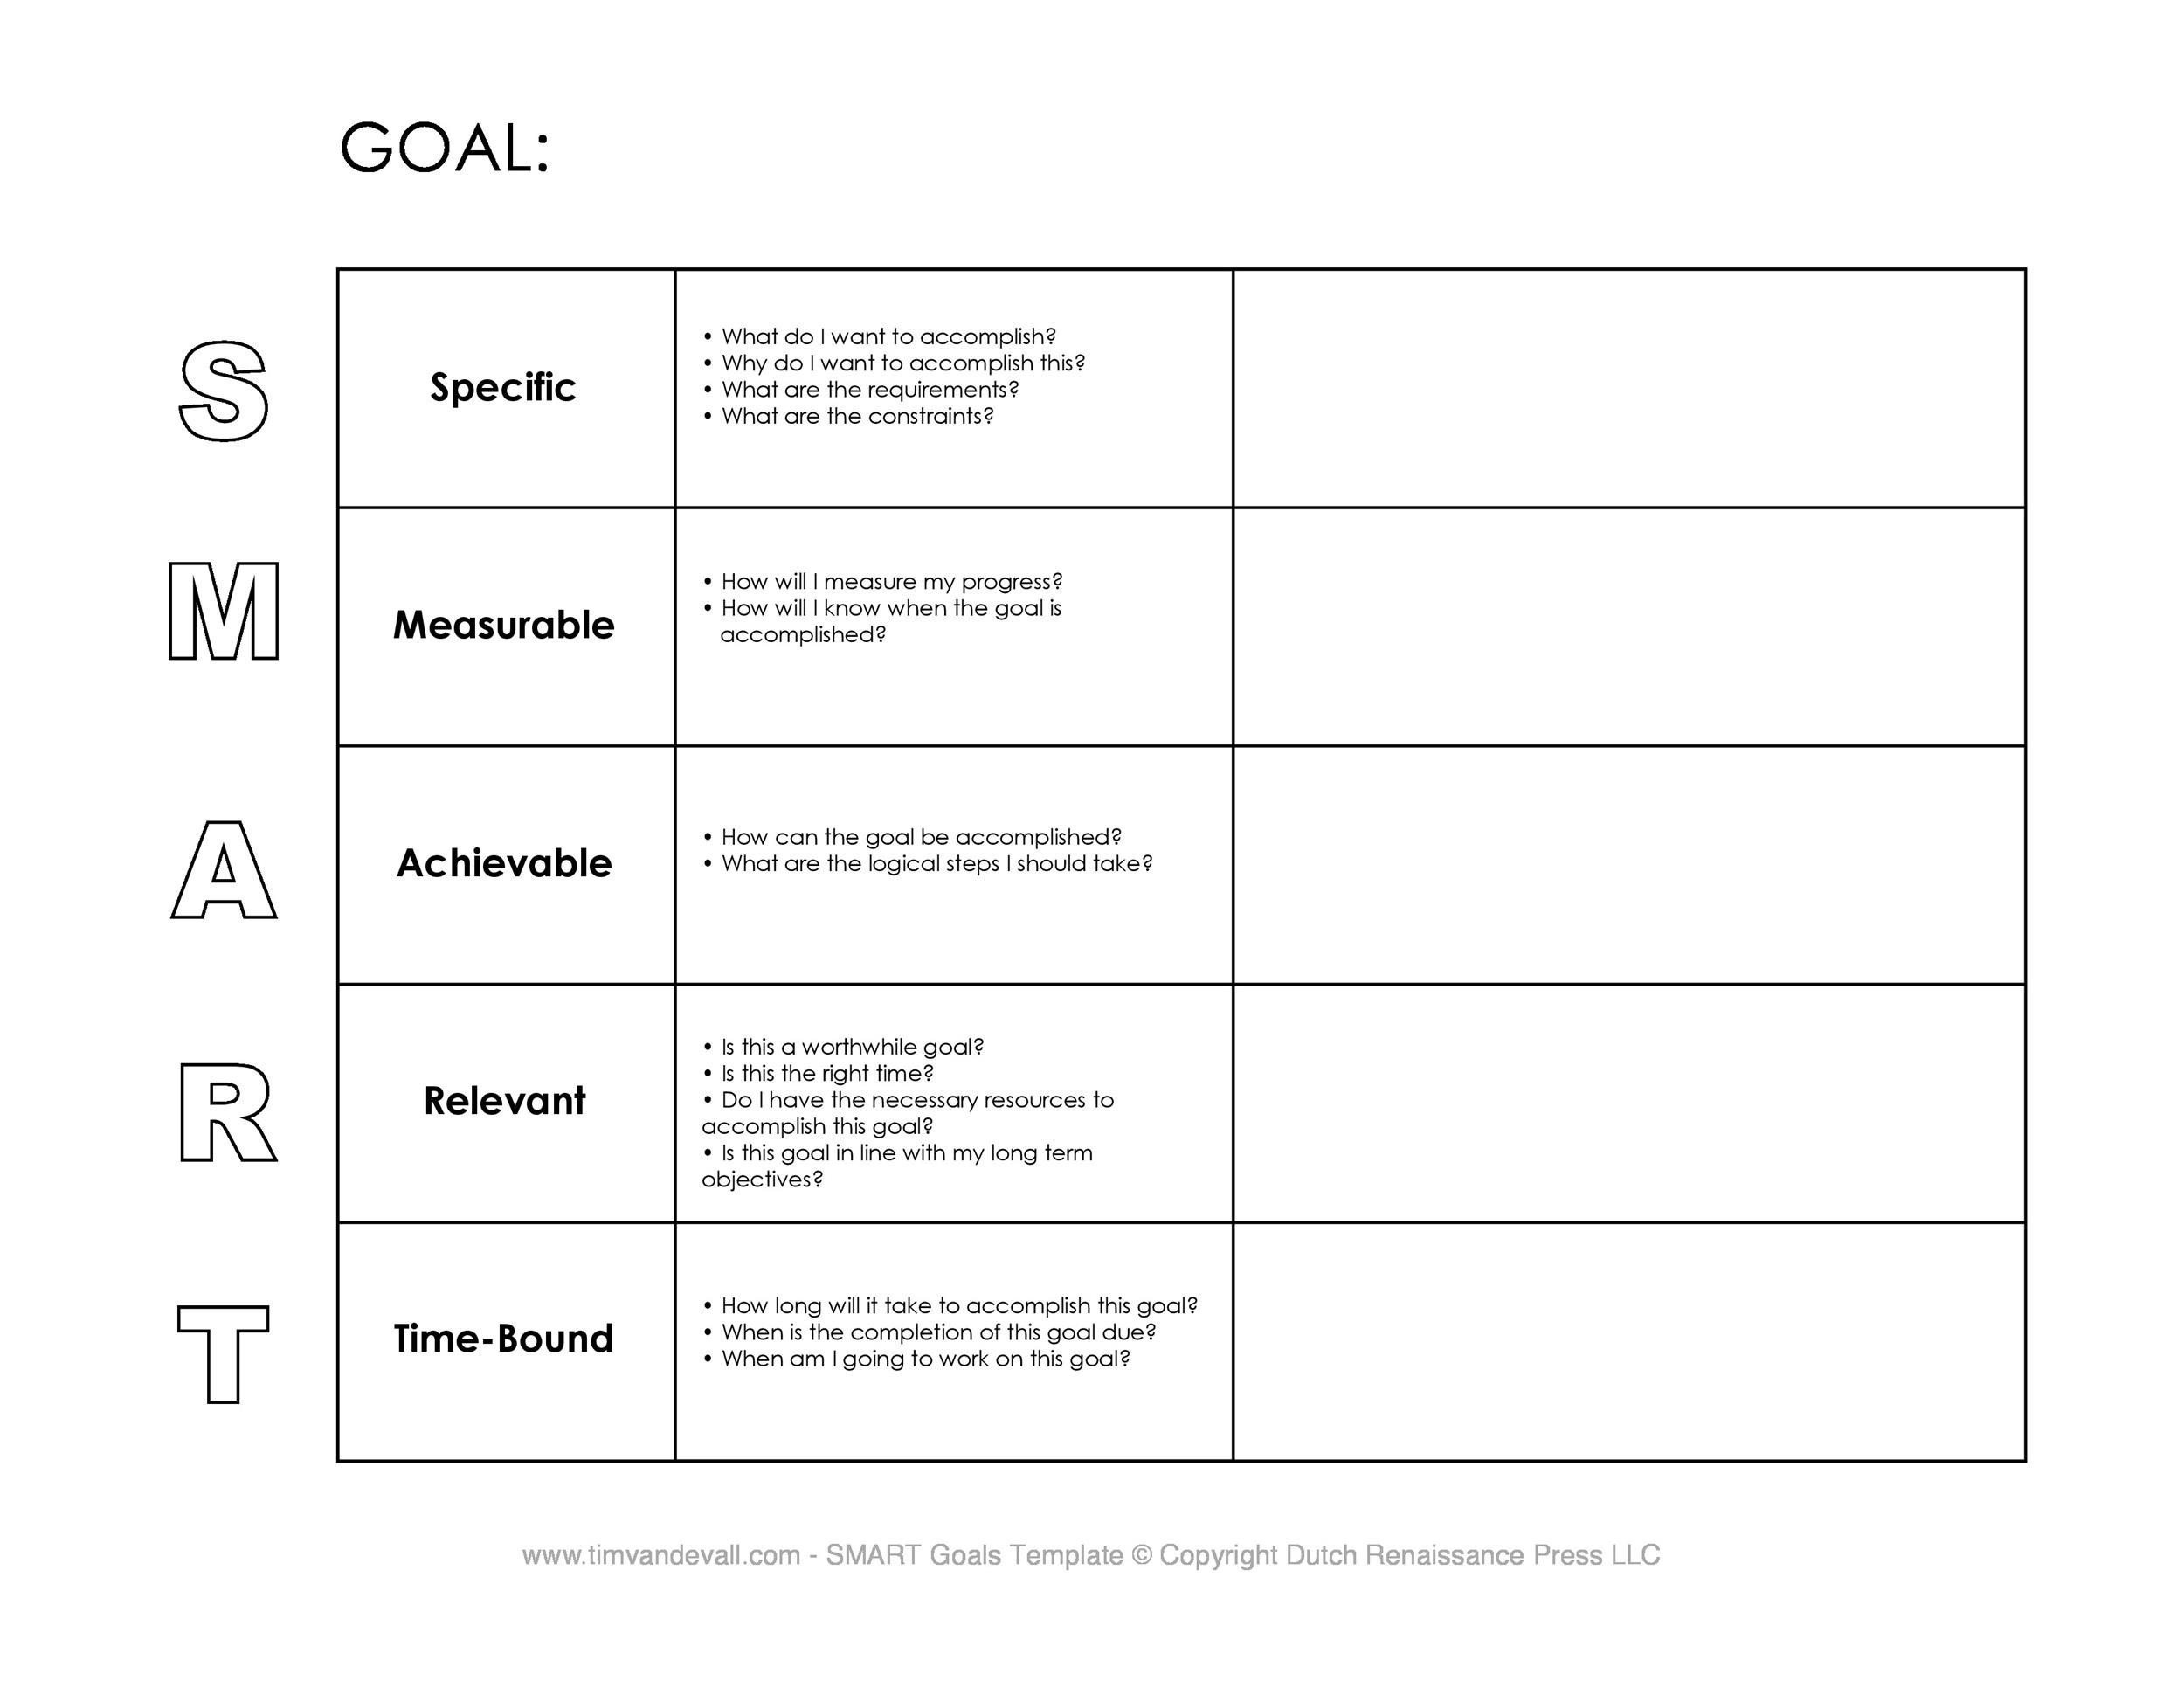 48 SMART Goals Templates, Examples \ Worksheets - Template Lab - sample goal tracking